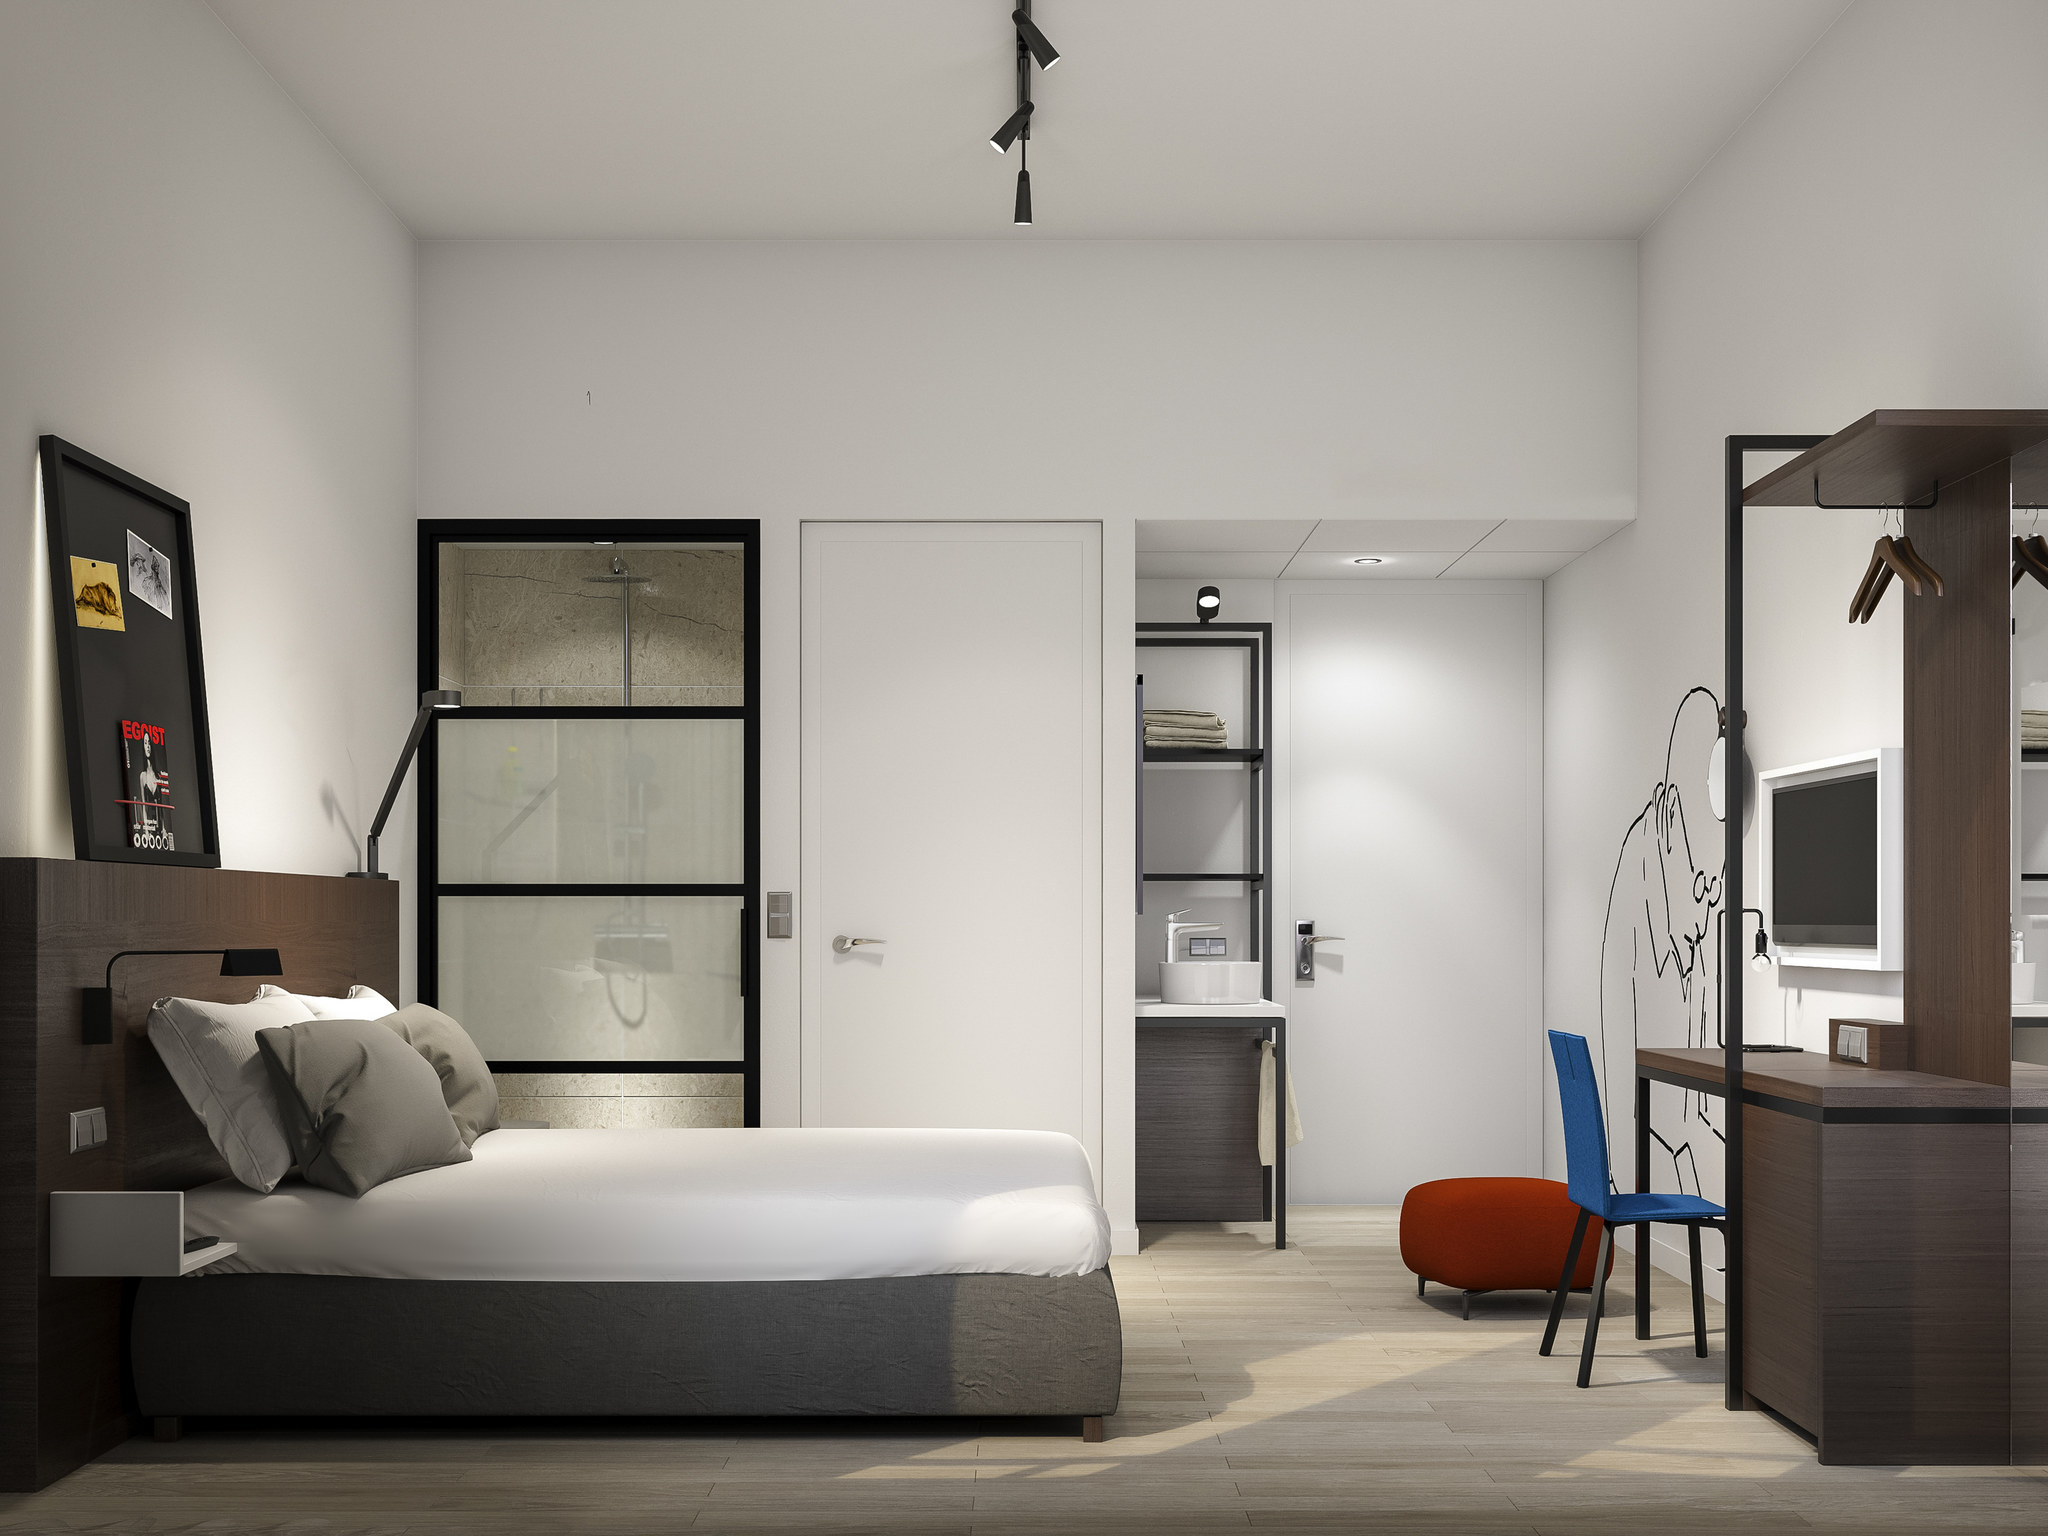 Hotel – ibis Styles Den Haag City Centre (Opening in November 2018)